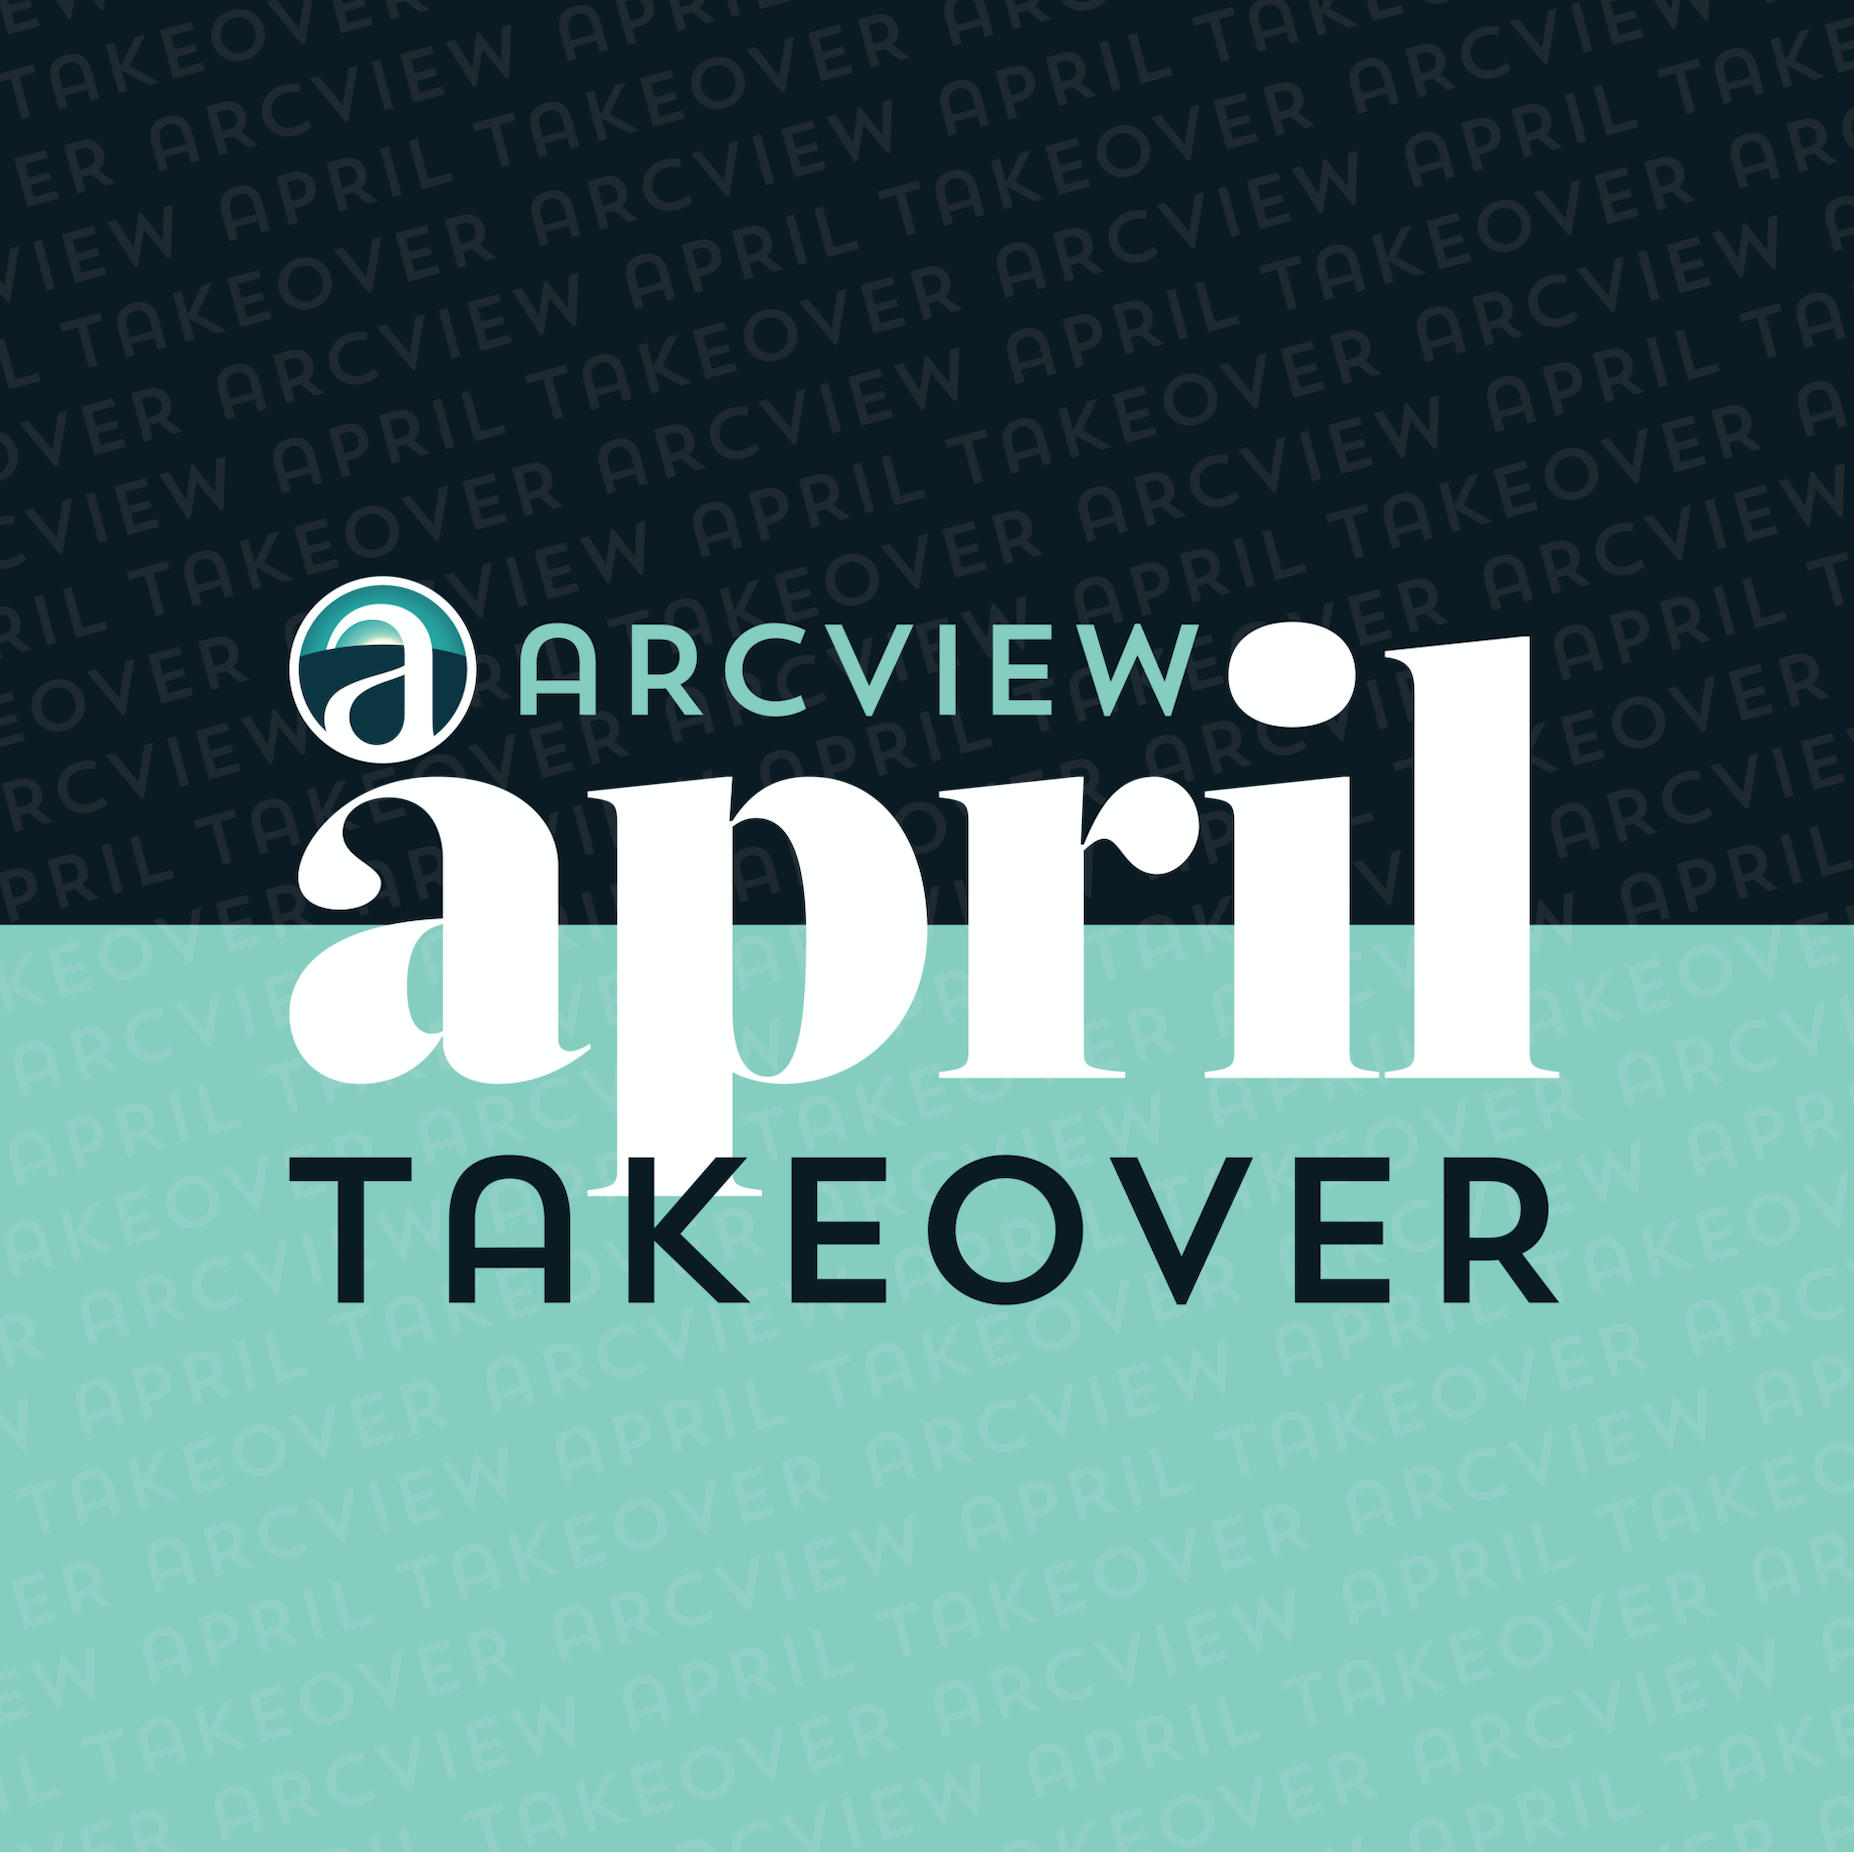 Cannabis Leaders Present 'Arcview April' During National Cannabis Awareness Month to Inspire Further Industry Advancement